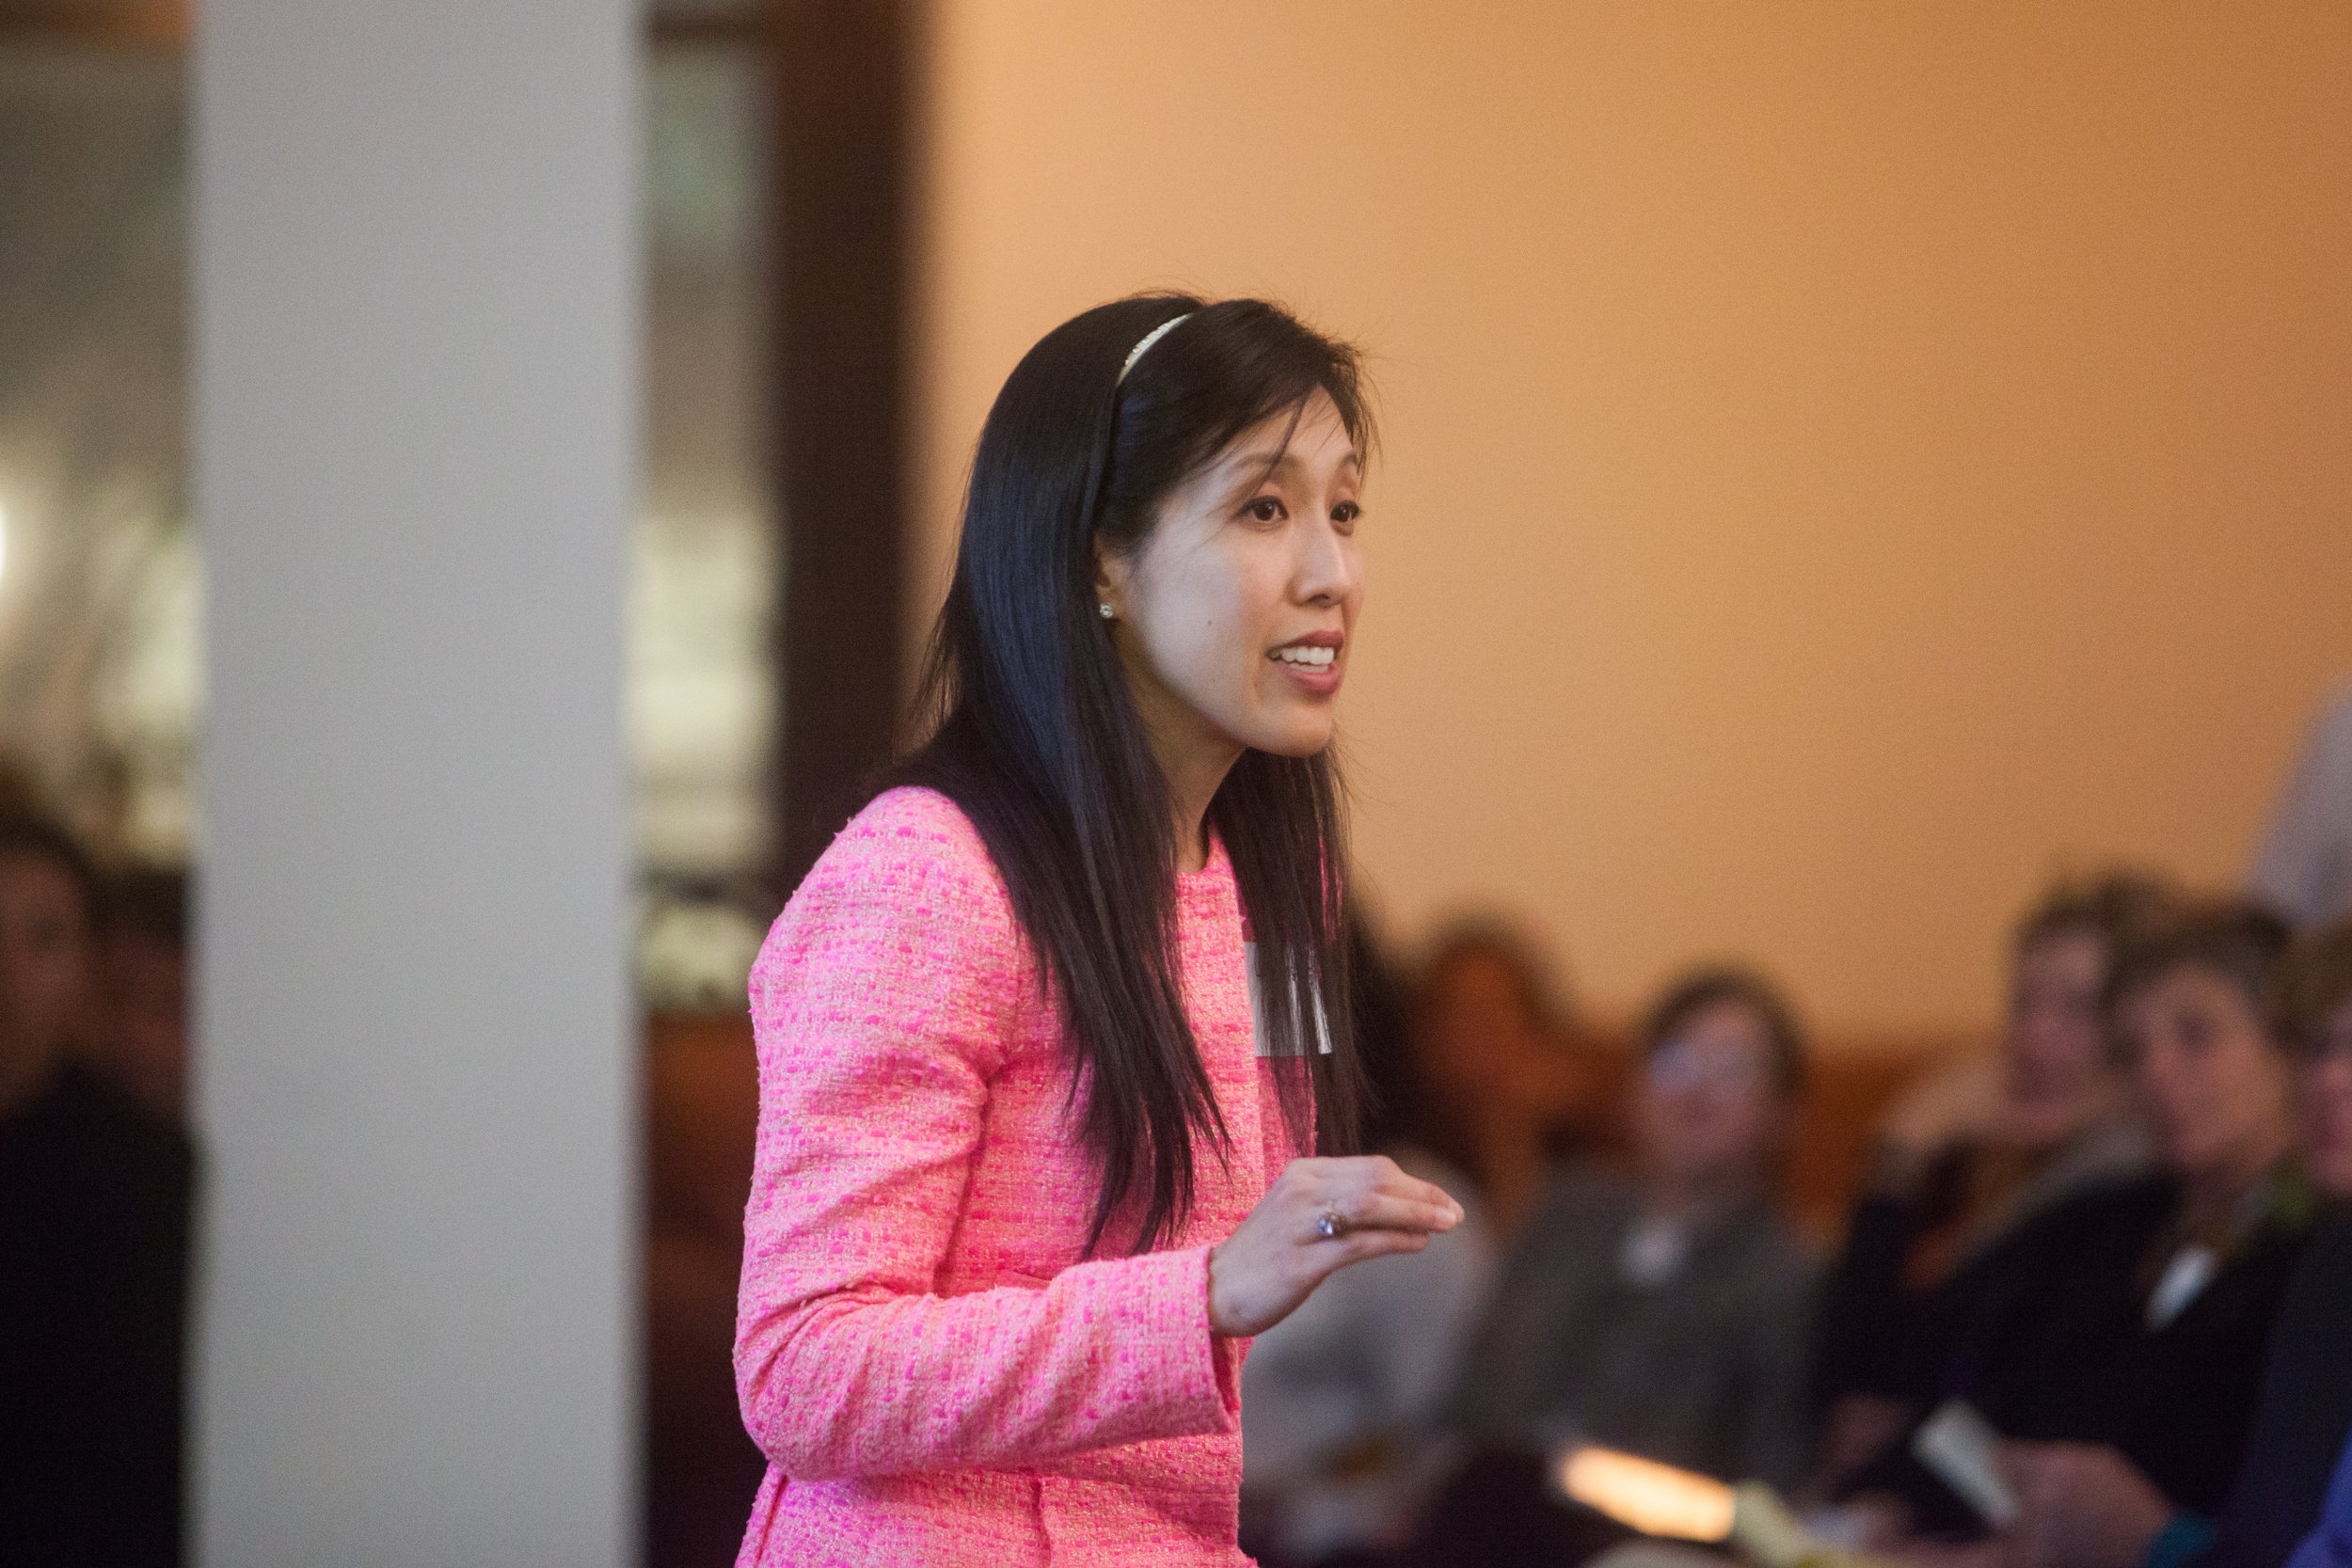 """- """"Fueling the Growth was an amazing experience. The opportunity to receive instant feedback on my pitch from an investor was incredibly helpful. Applying that advice to subsequent presentations was invaluable. Through Fueling the Growth, I instantly expanded my network of entrepreneurs, investors, and business leaders. Winning Fueling the Growth was great exposure for our company.""""Lisa Wong, Liquidaty"""